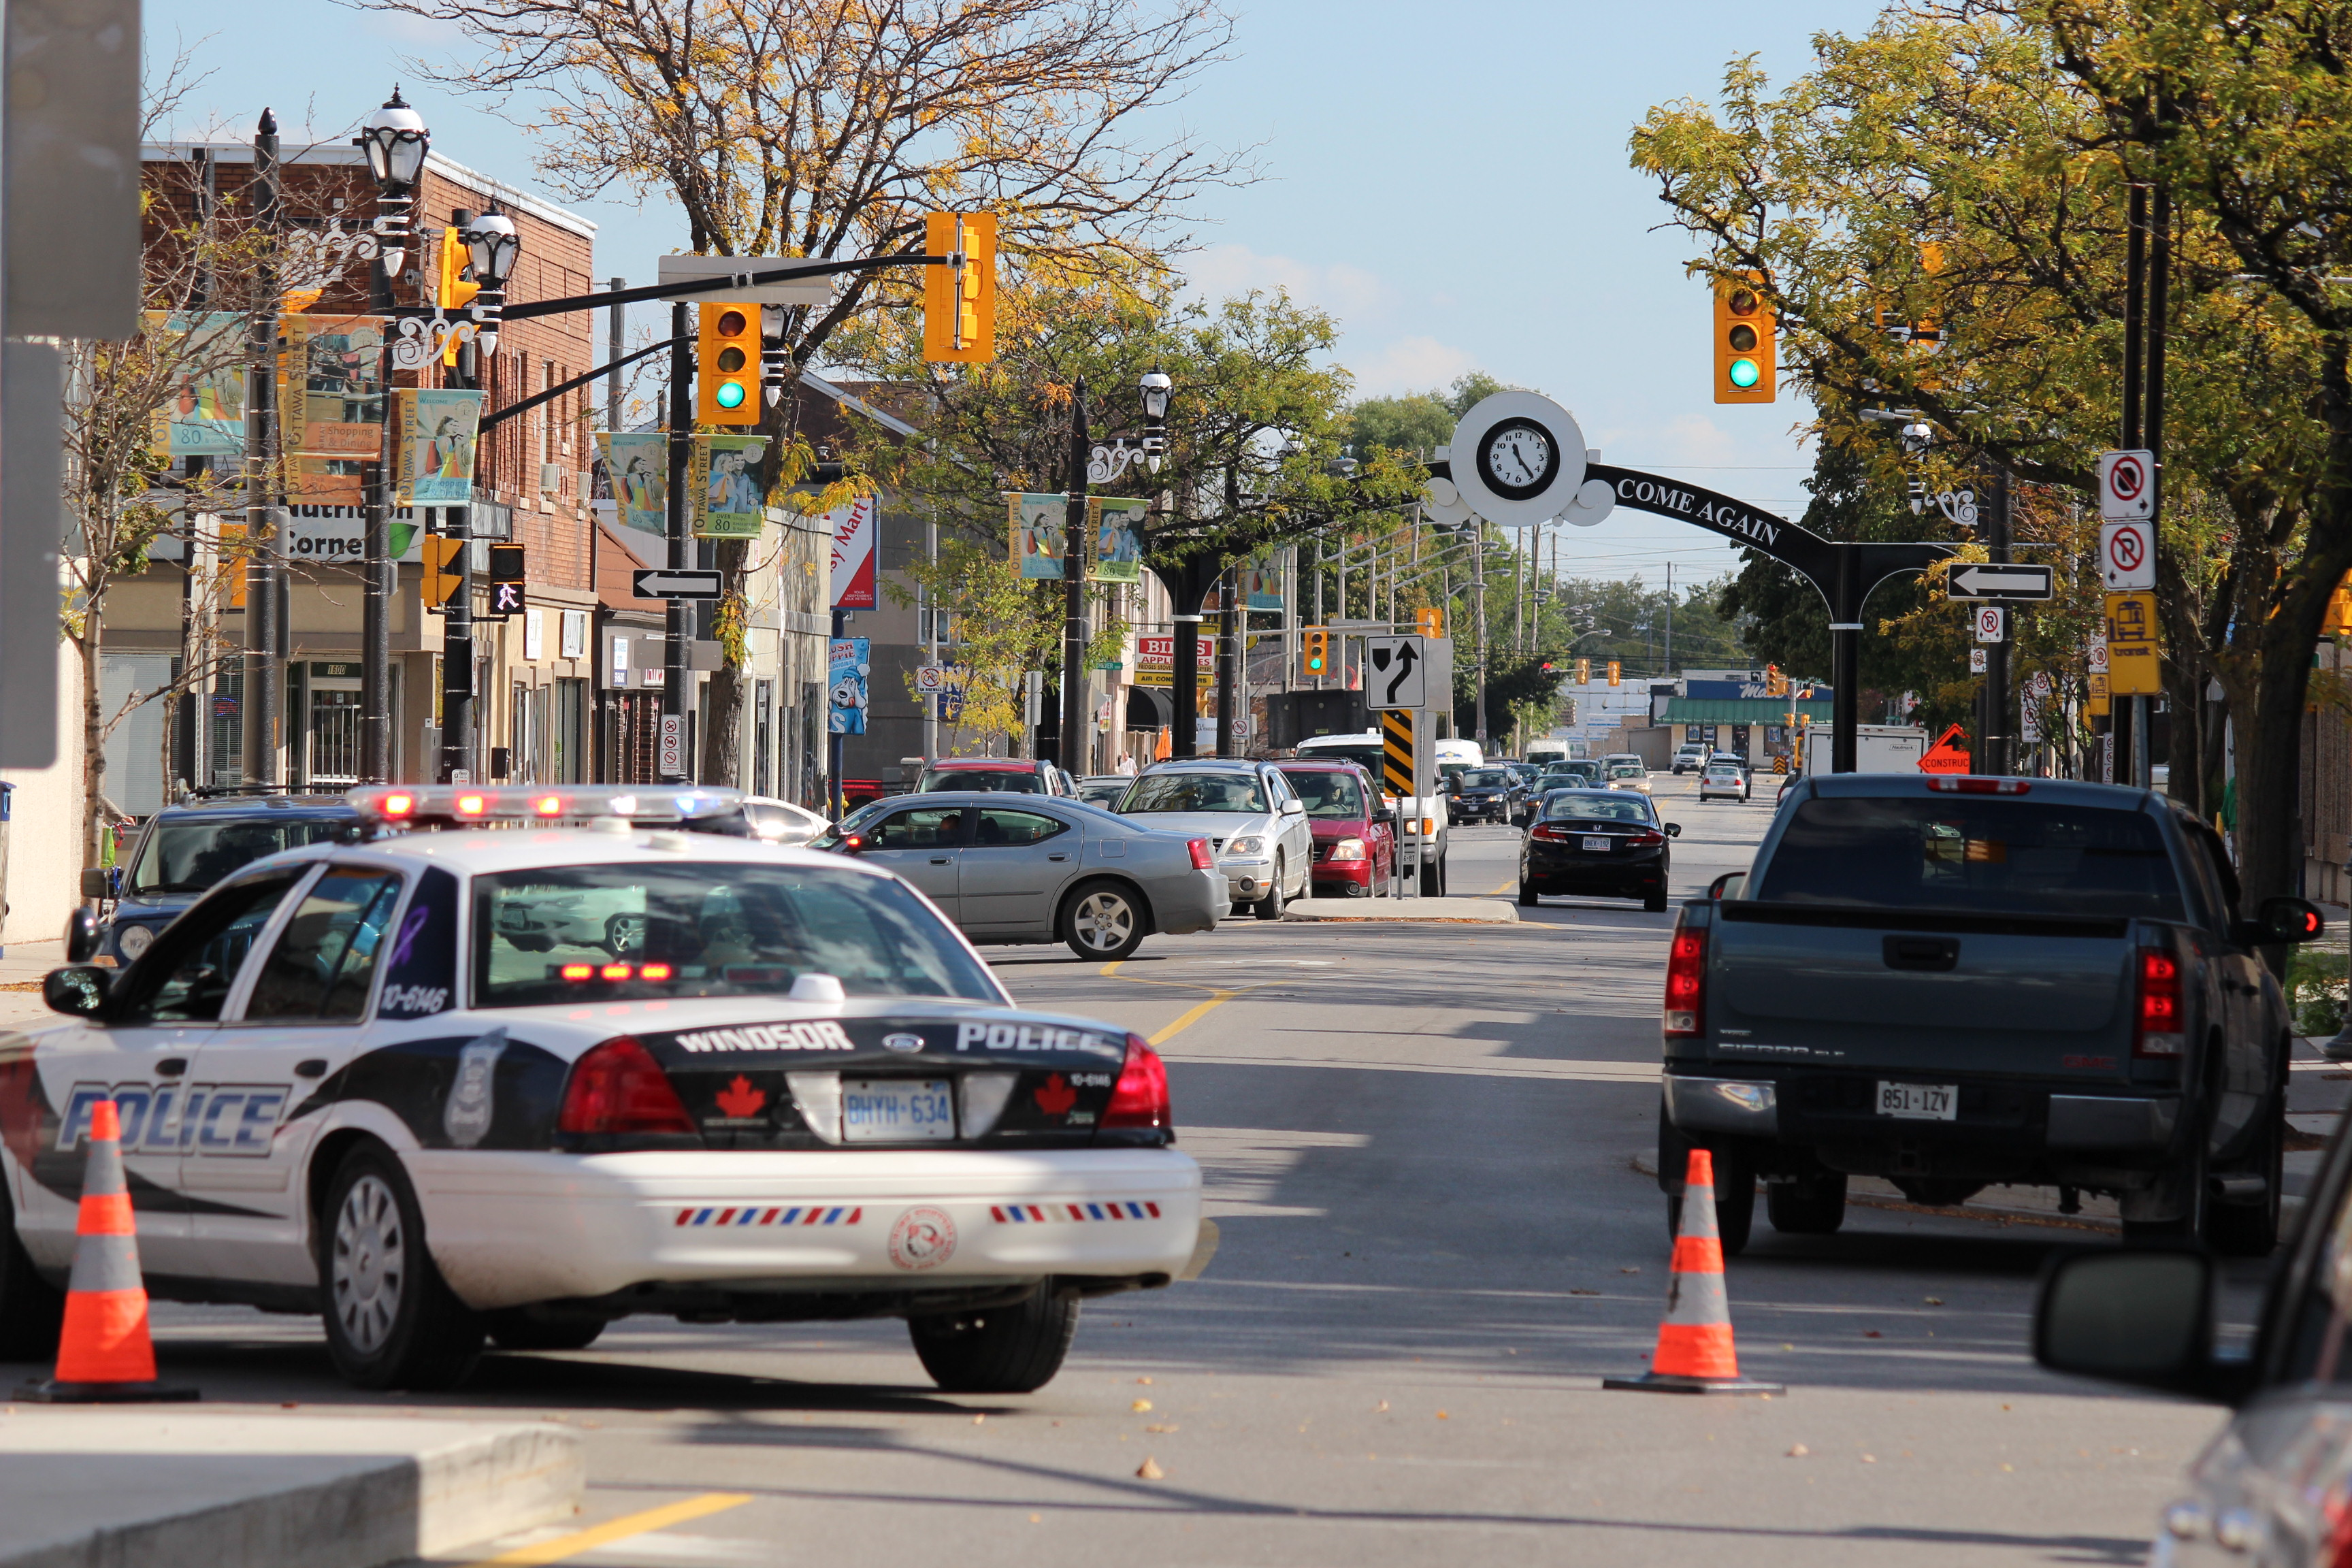 Windsor police investigate after a pedestrian was struck at the intersection of Ottawa St. and Gladstone Ave. (Photo by Jason Viau)